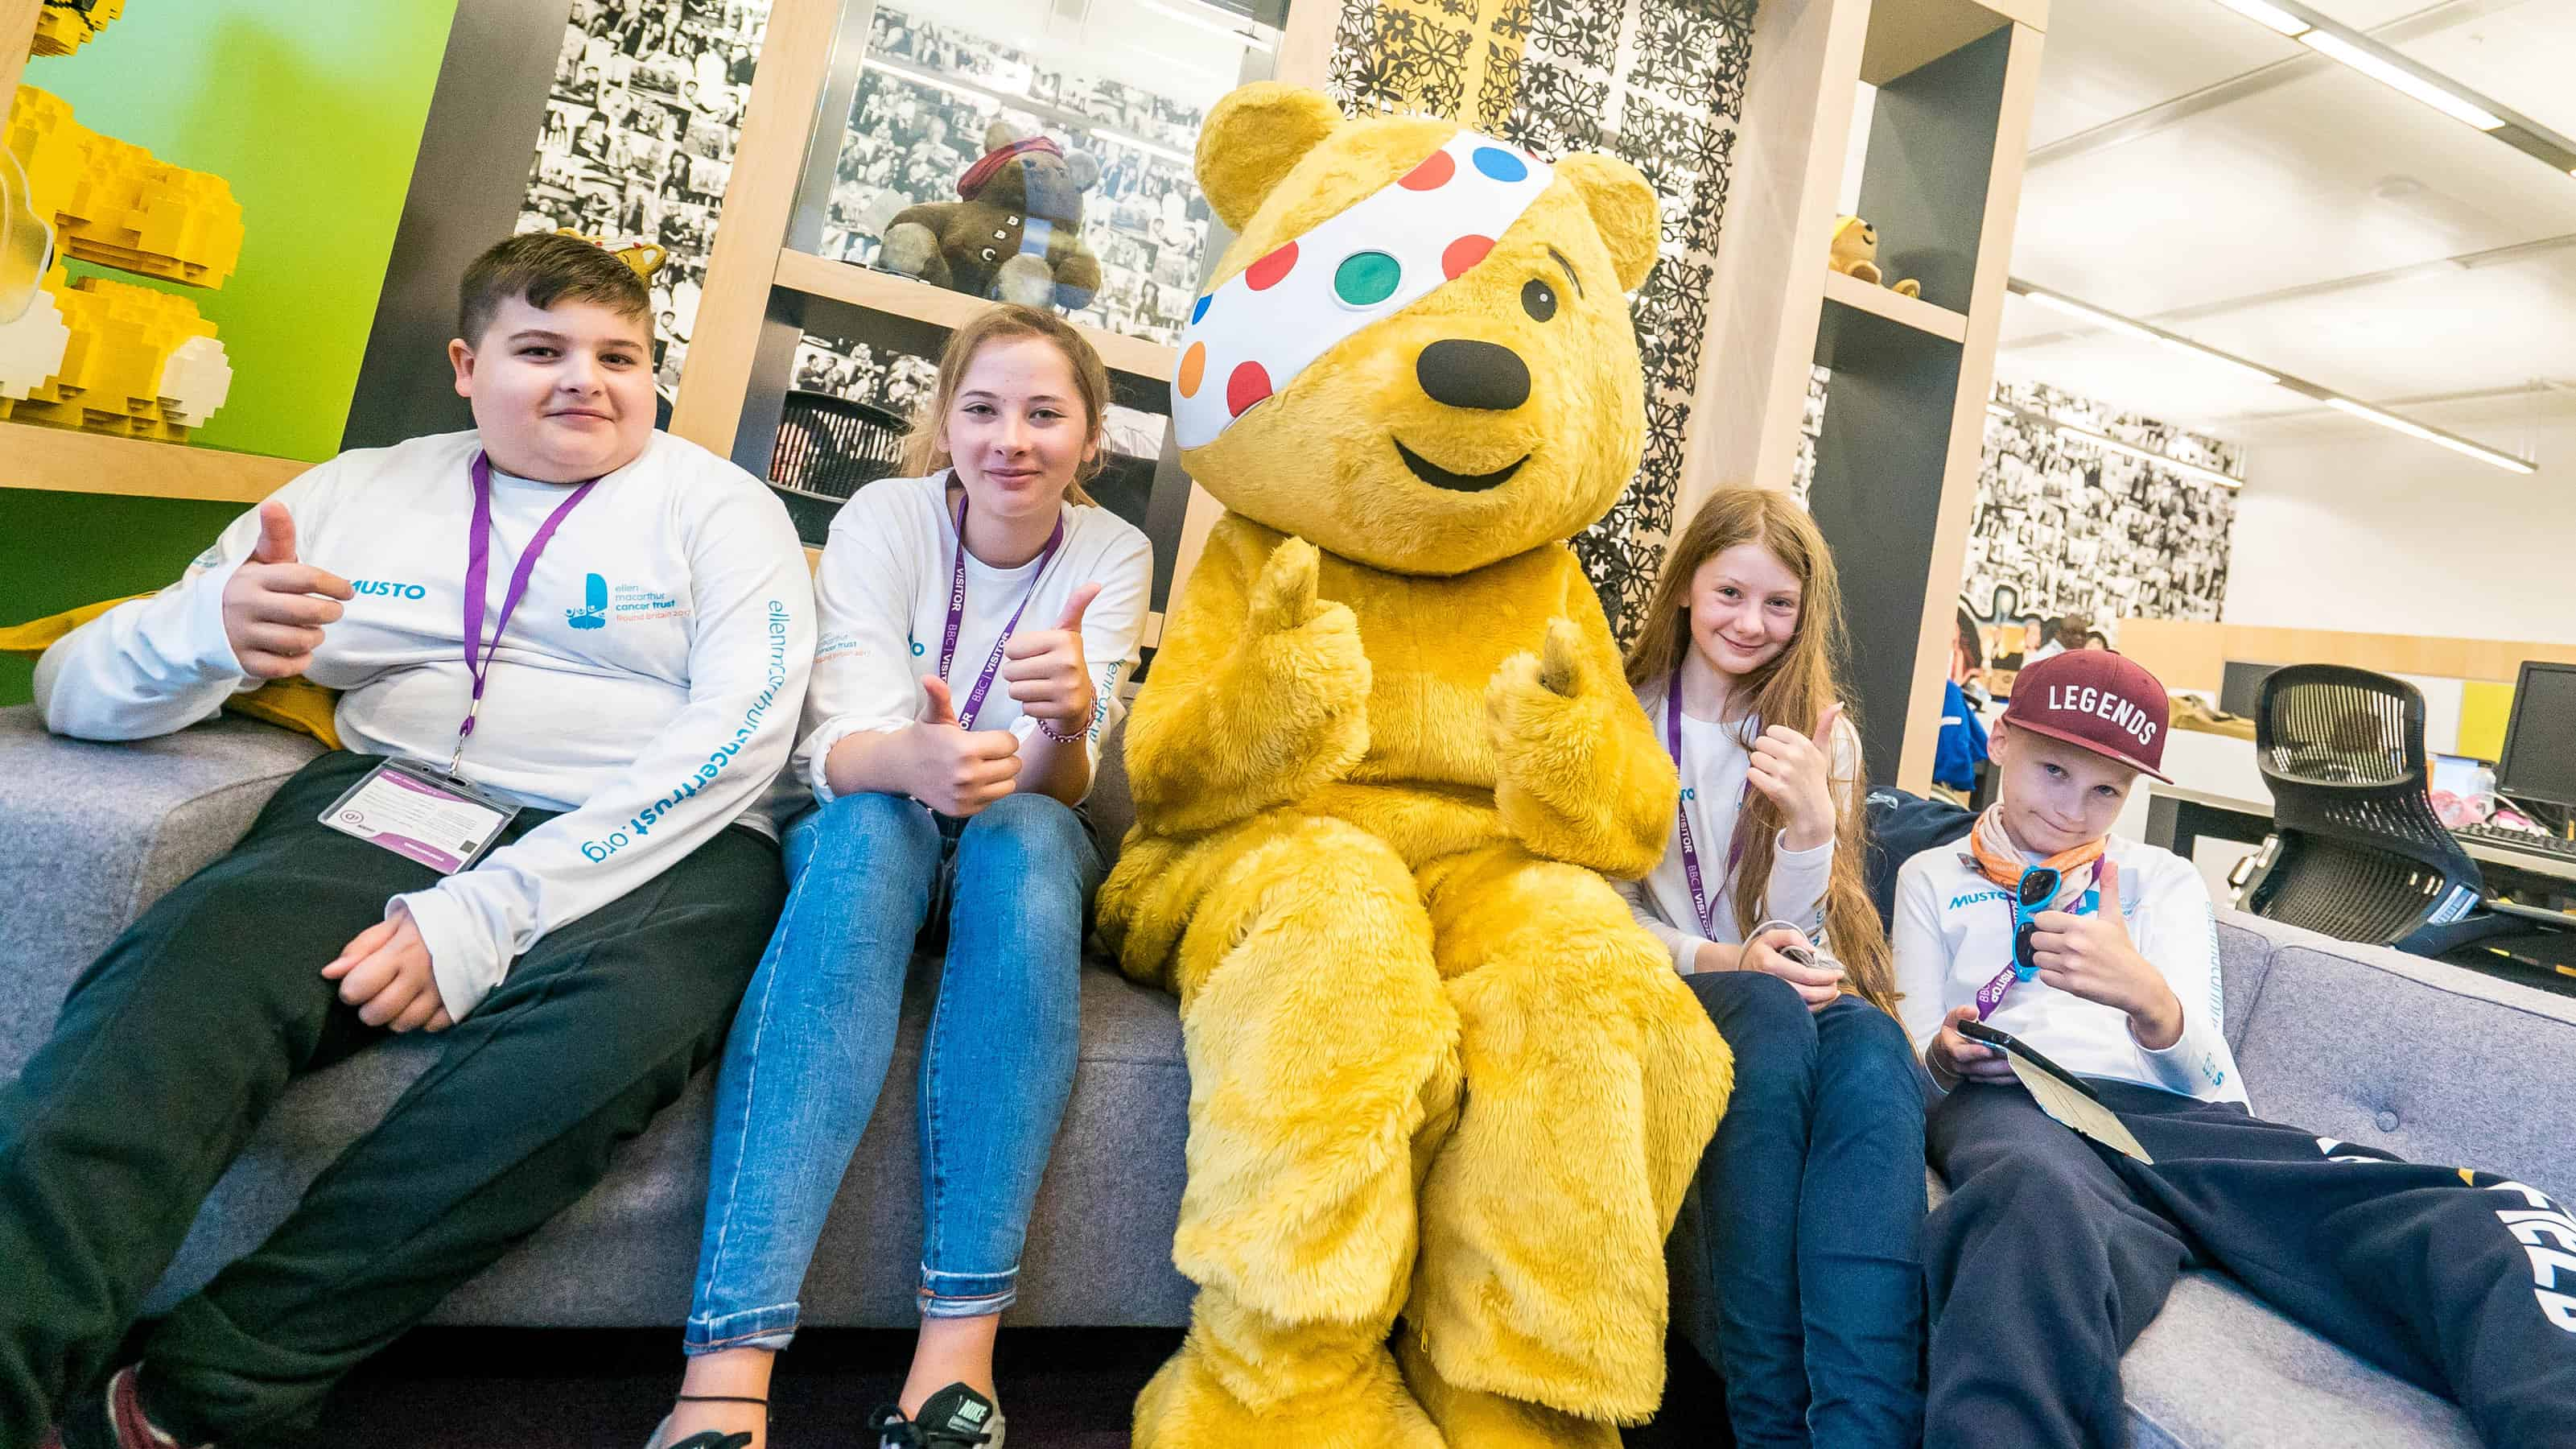 Tune in to watch Children in Need who have granted funding to support young people in recovery from cancer